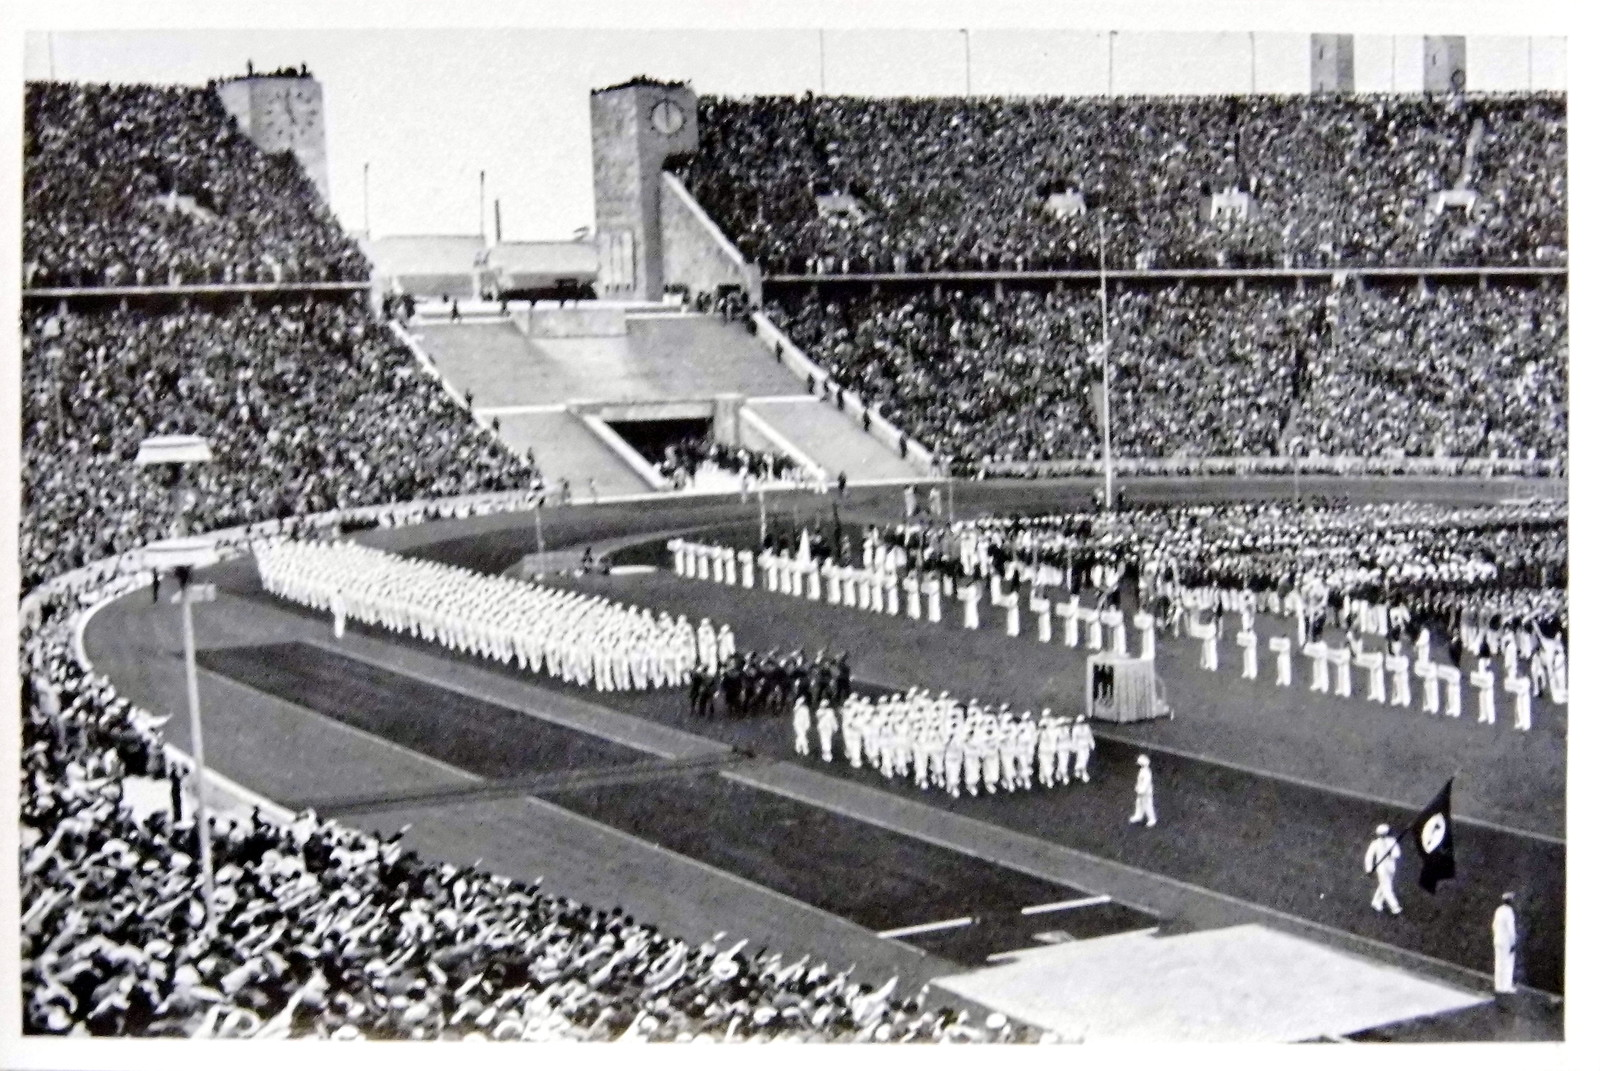 1936 Berlin Olympics Photograph - German Olympic Team Marching in the Olympic Stadium in Berlin